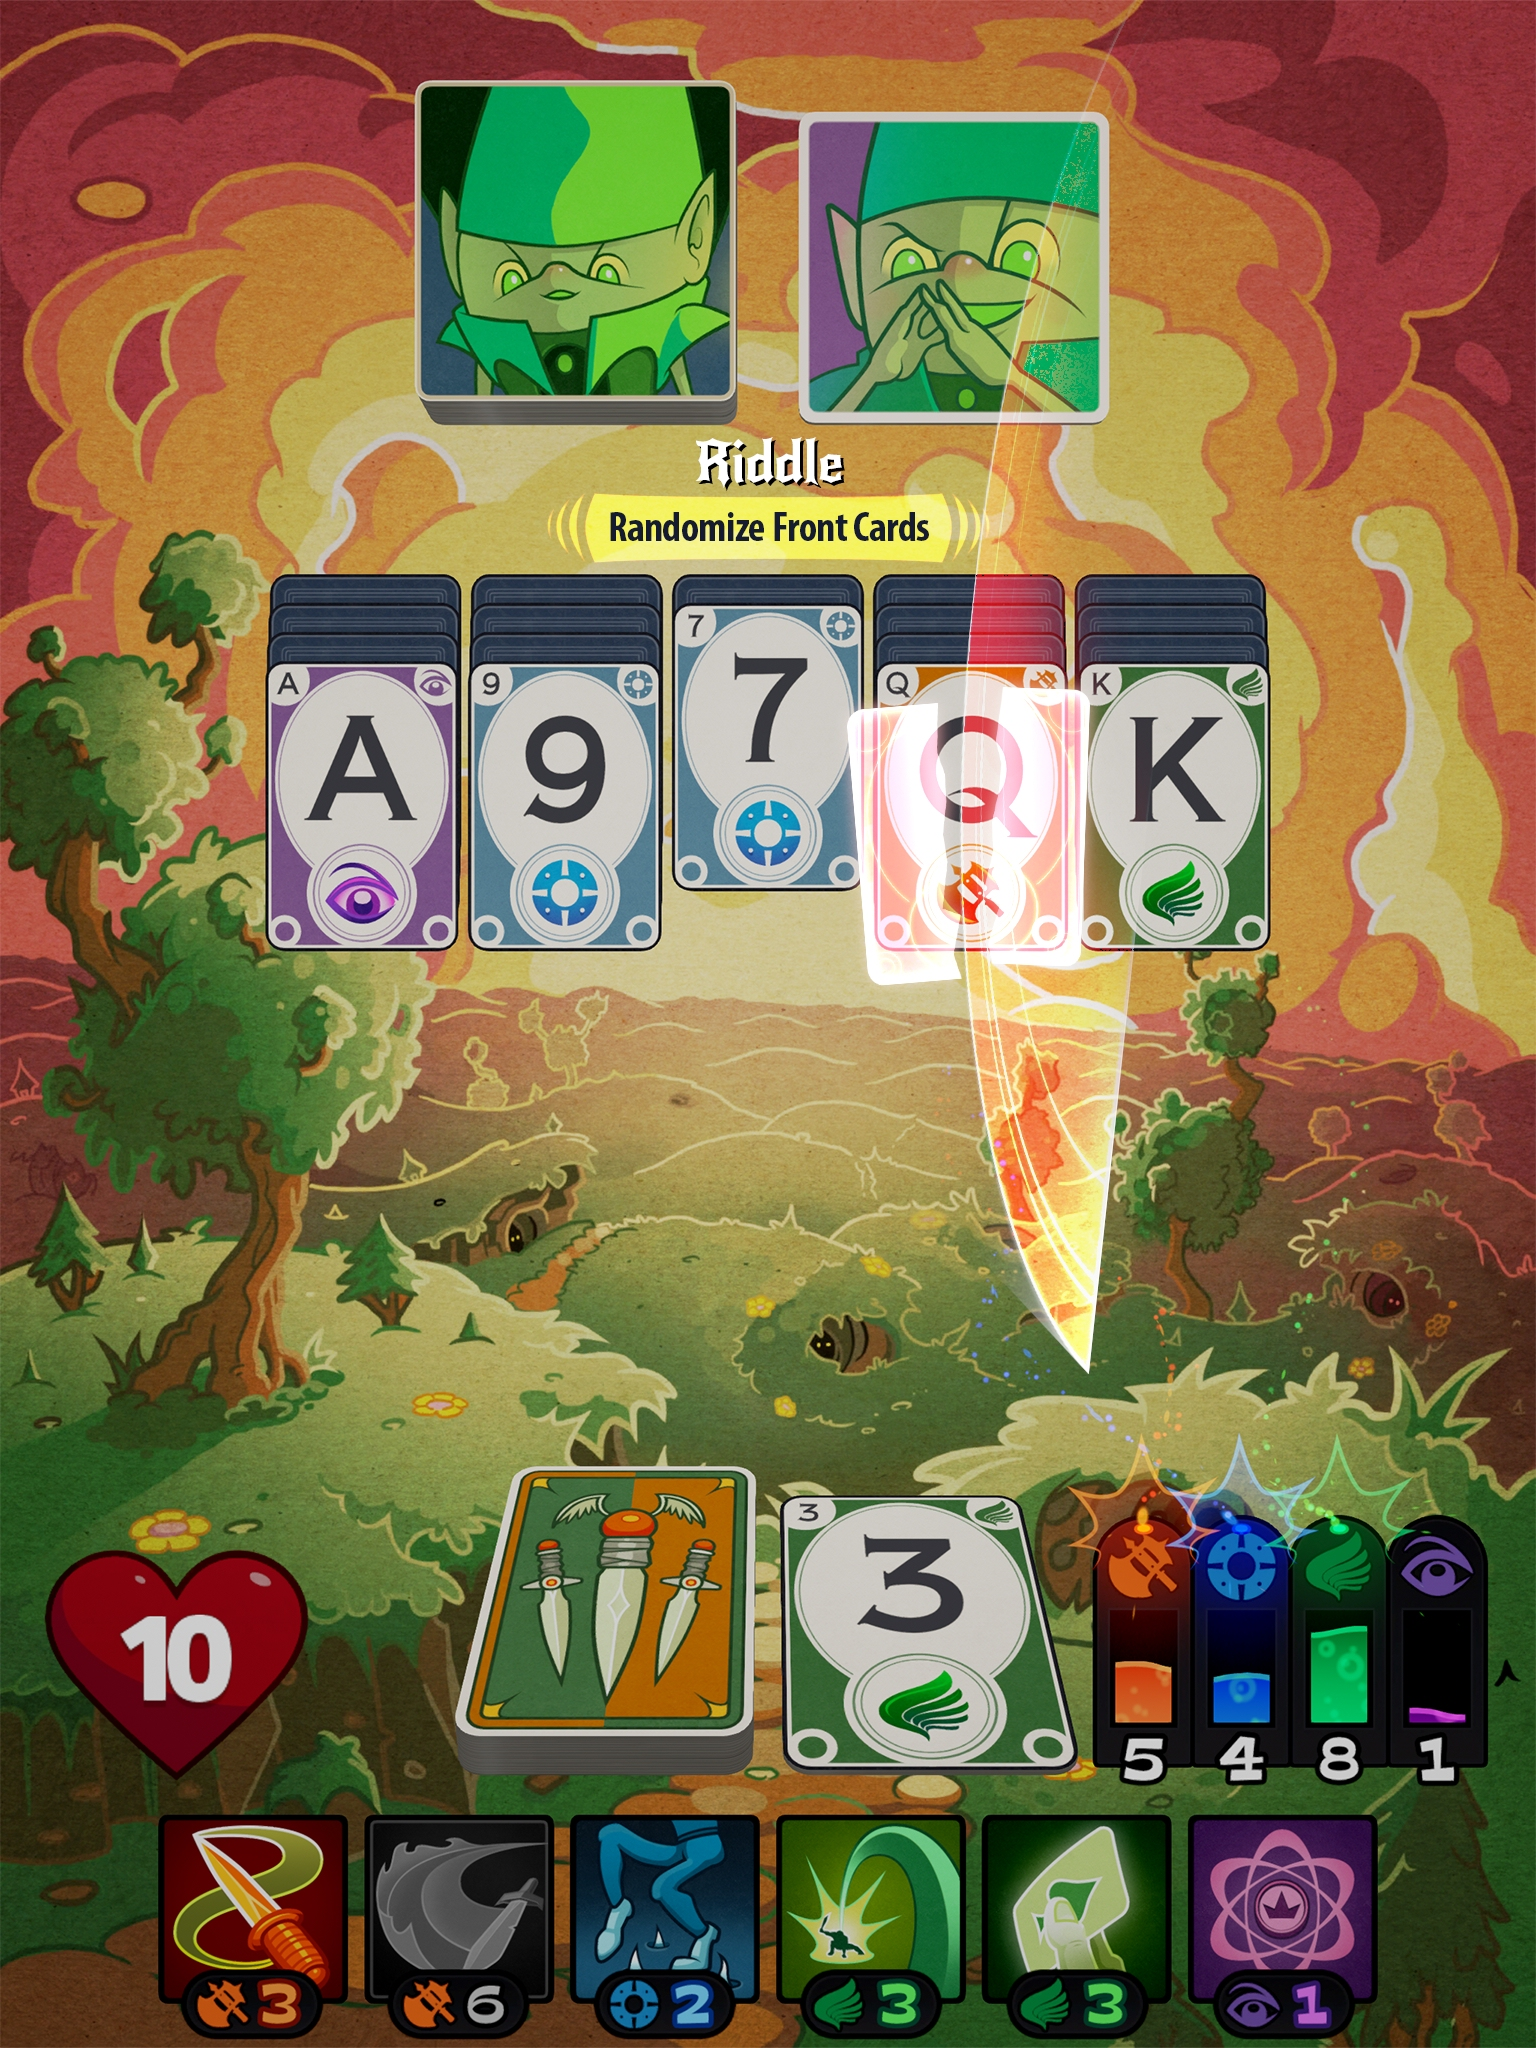 Roguelike card game Solitairica drops to £1.99 / $1.99 once again